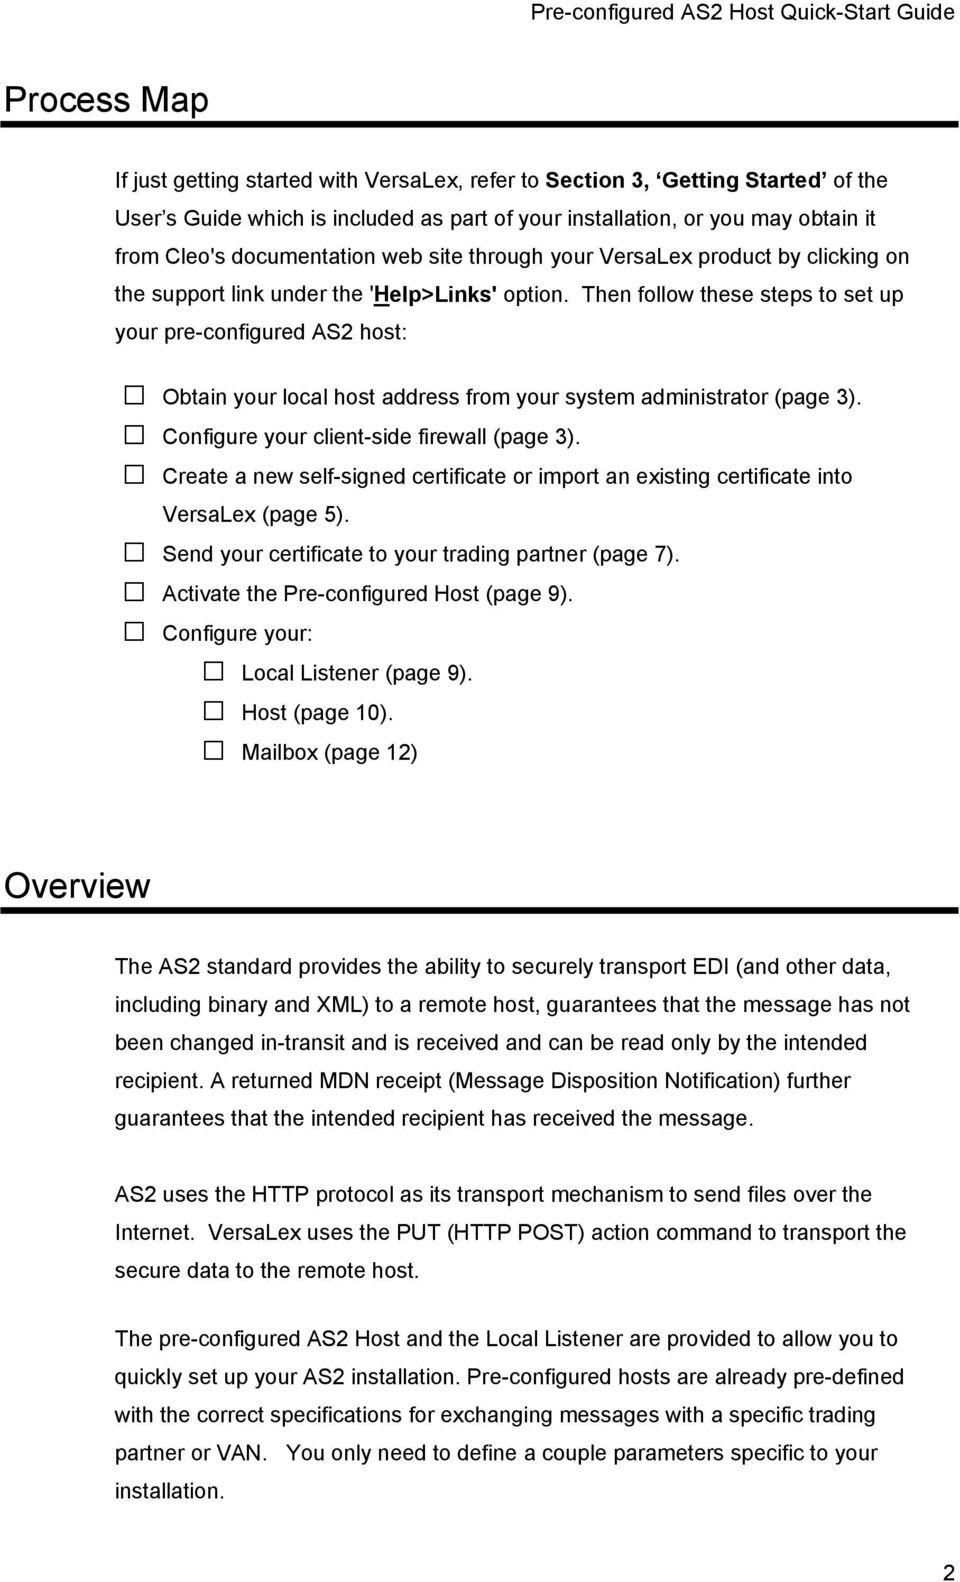 Pre-configured AS2 Host Quick-Start Guide - PDF